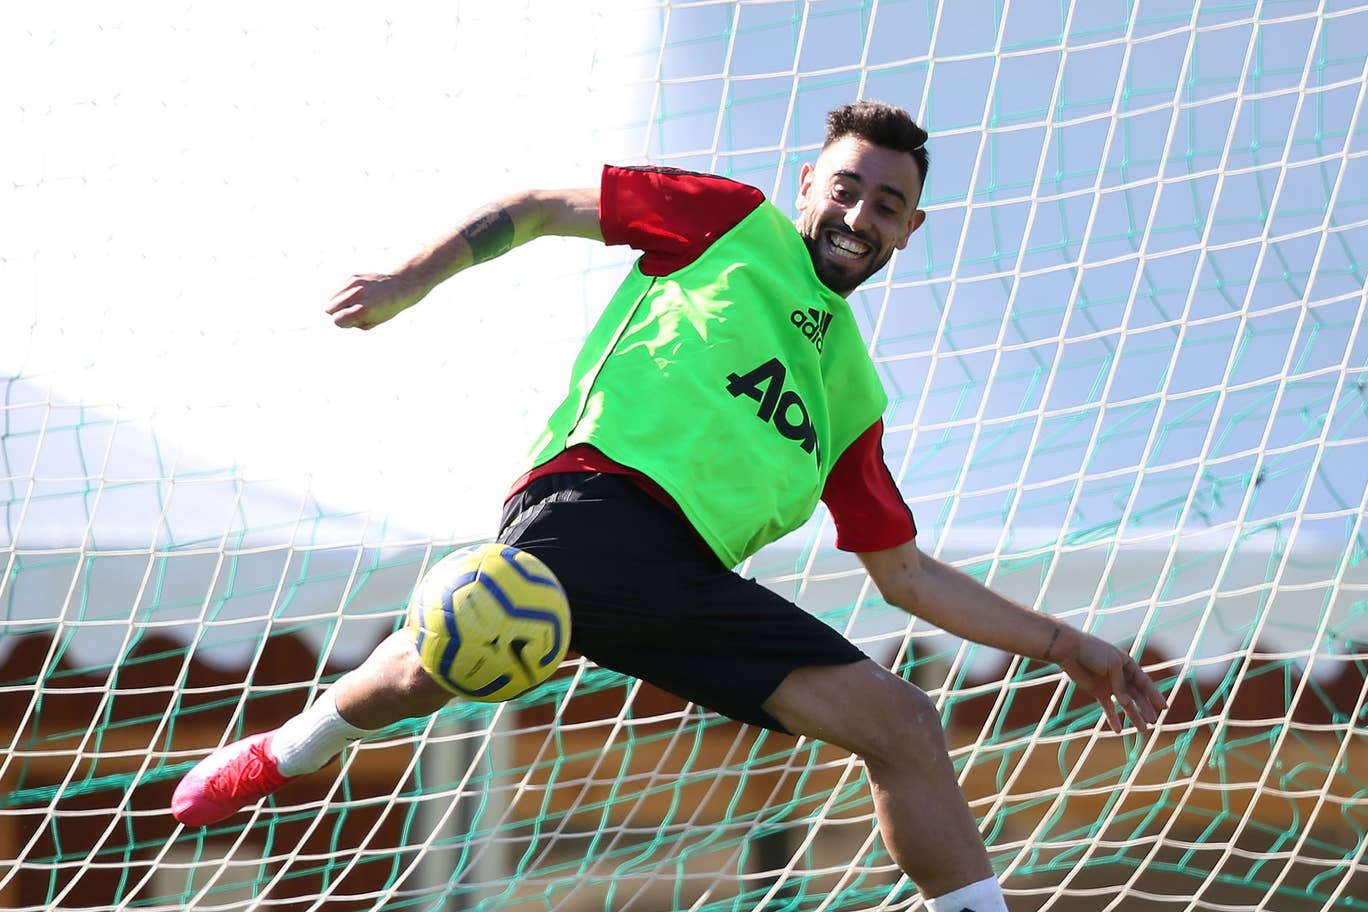 Manchester United boss Ole Gunnar Solskjaer thrilled by 'brilliant' Bruno Fernandes at Marbella training camp - Bóng Đá